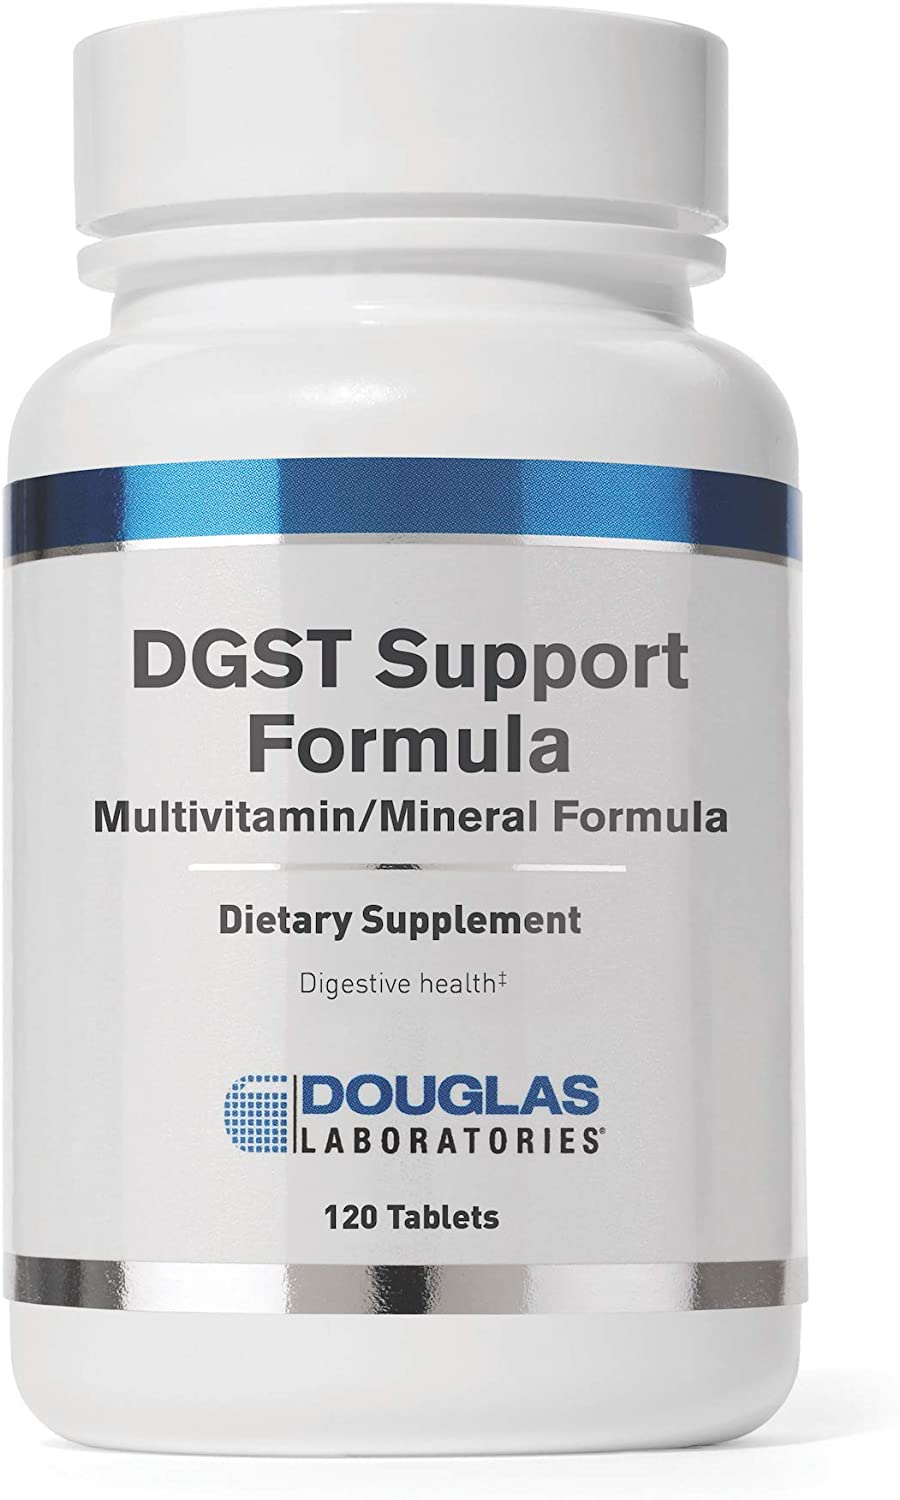 Douglas Laboratories – DGST-Support Formula – Combination of Vitamins, Minerals, Enzymes, Herbals, and Other Nutrients to Help Assimilate and Utilize Foods More Effectively* – 120 Tablets